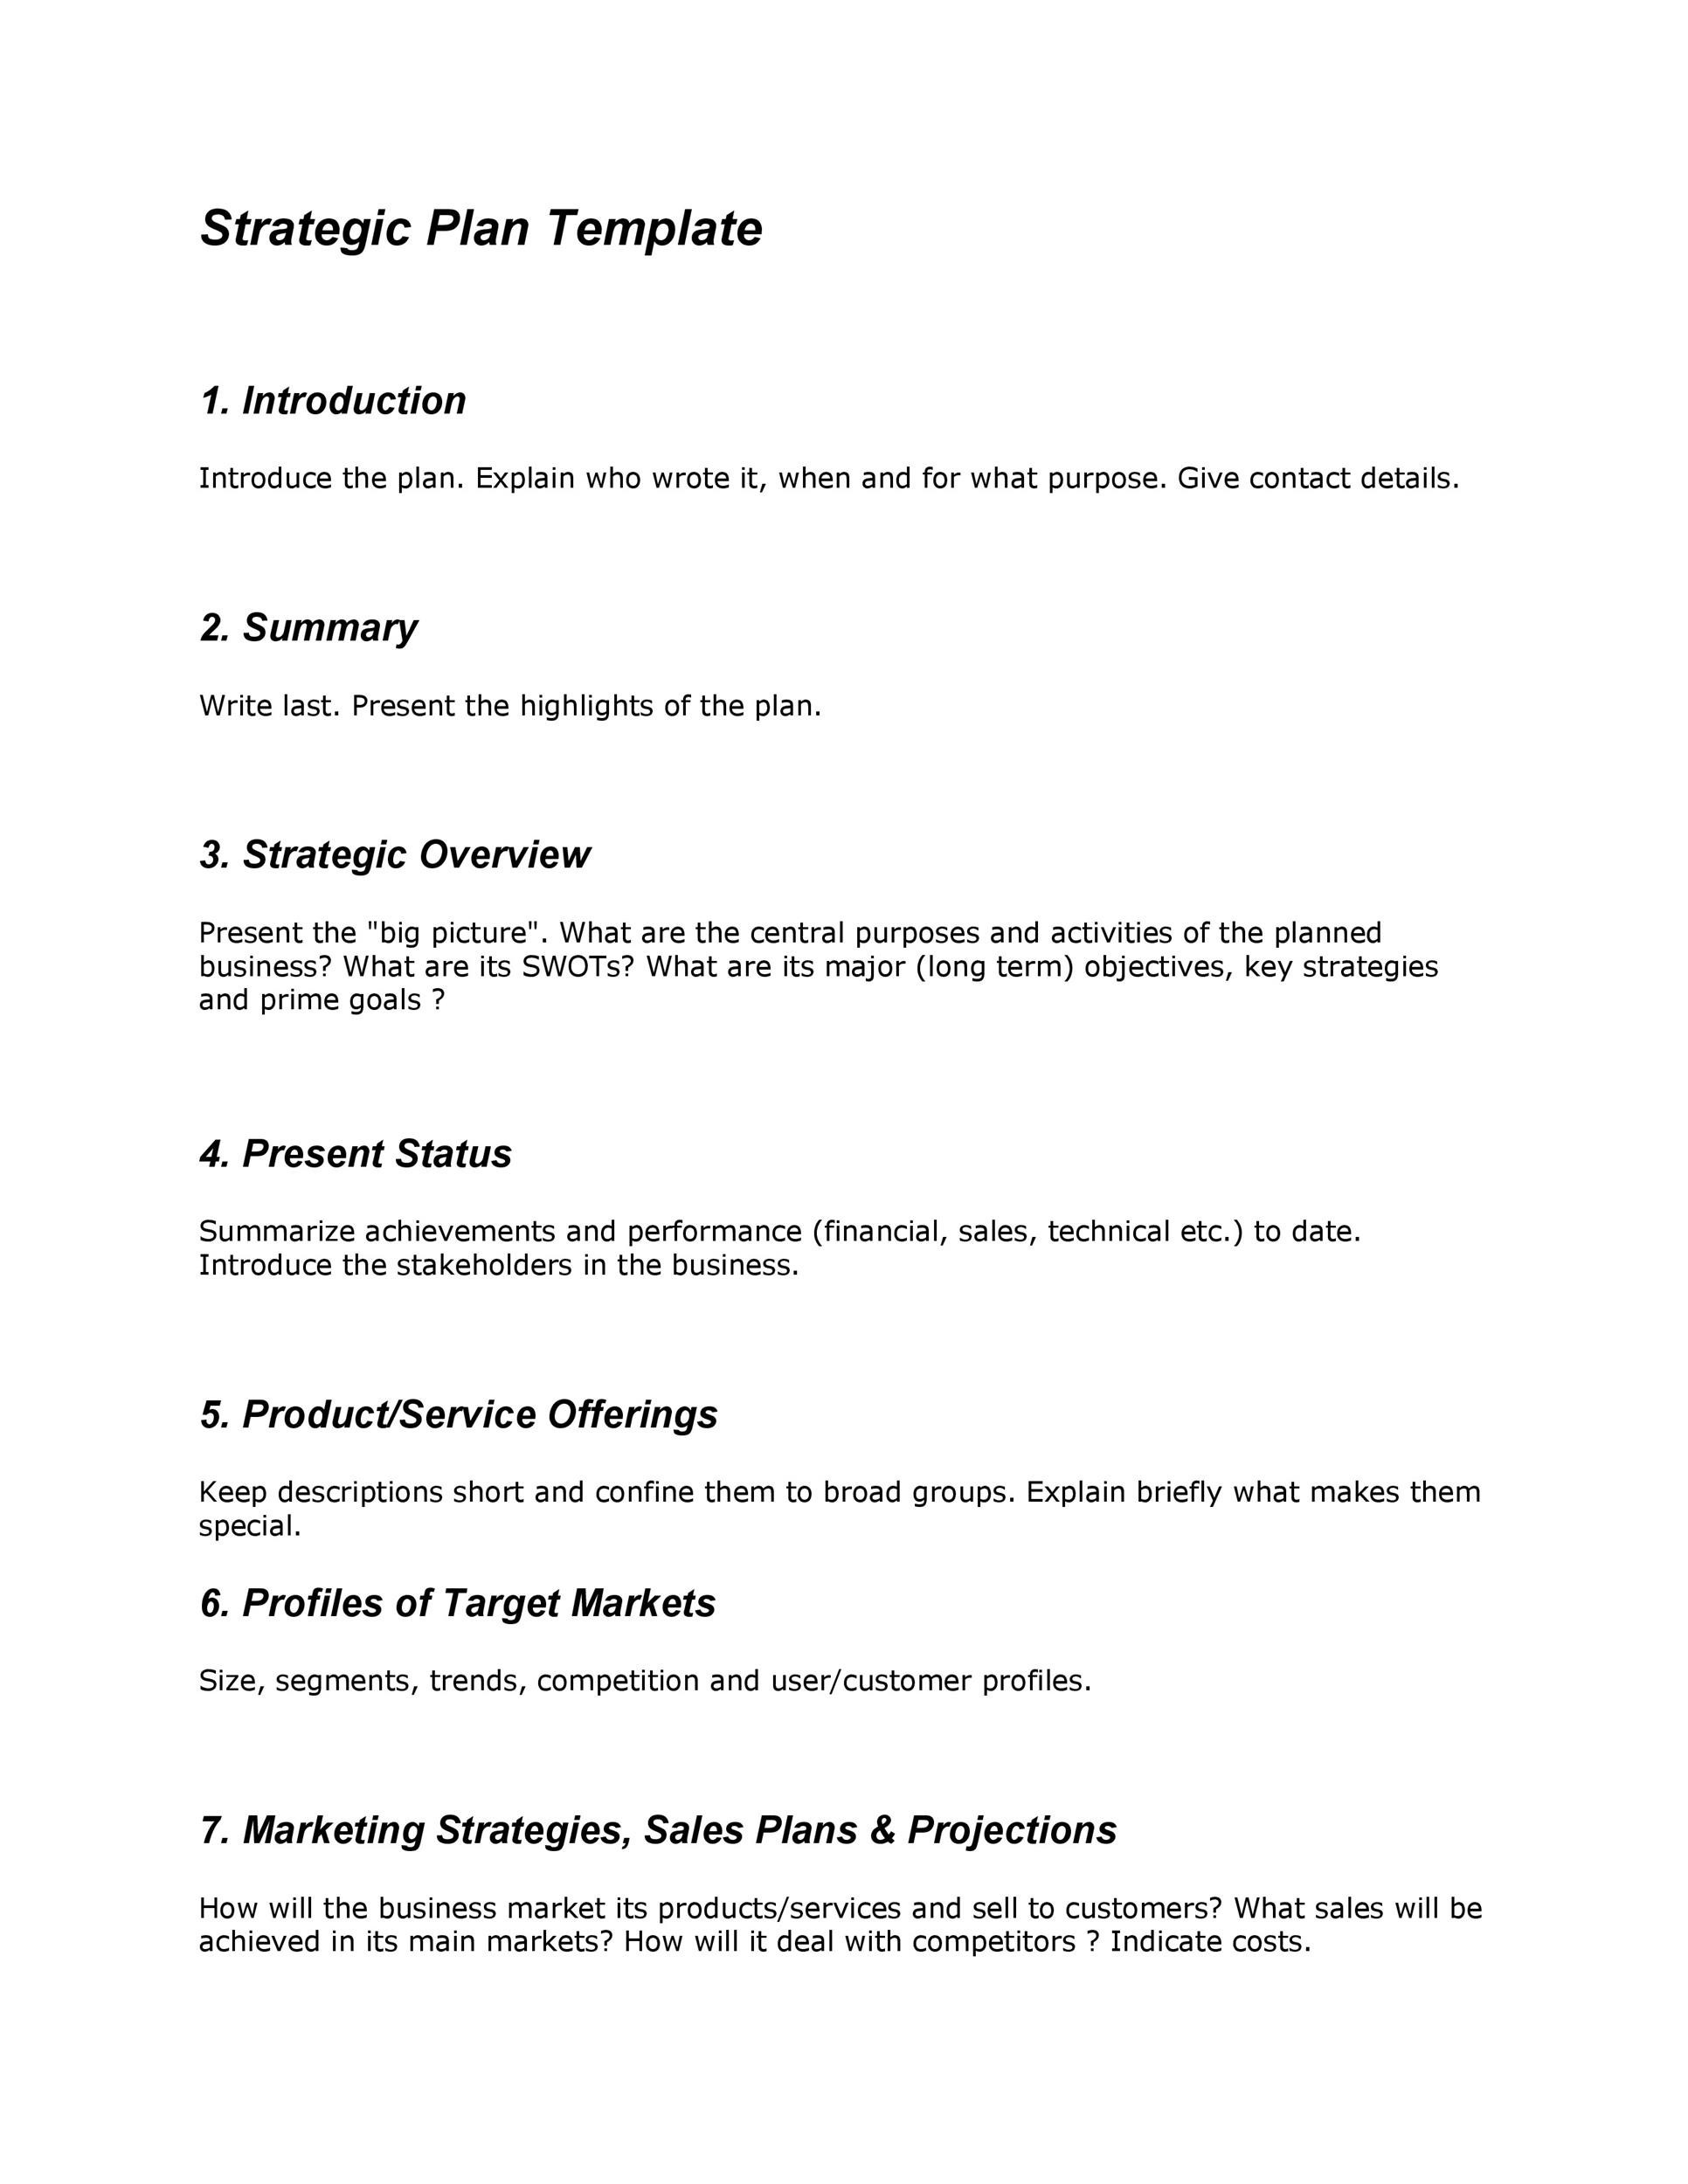 Strategic Plan Template 13